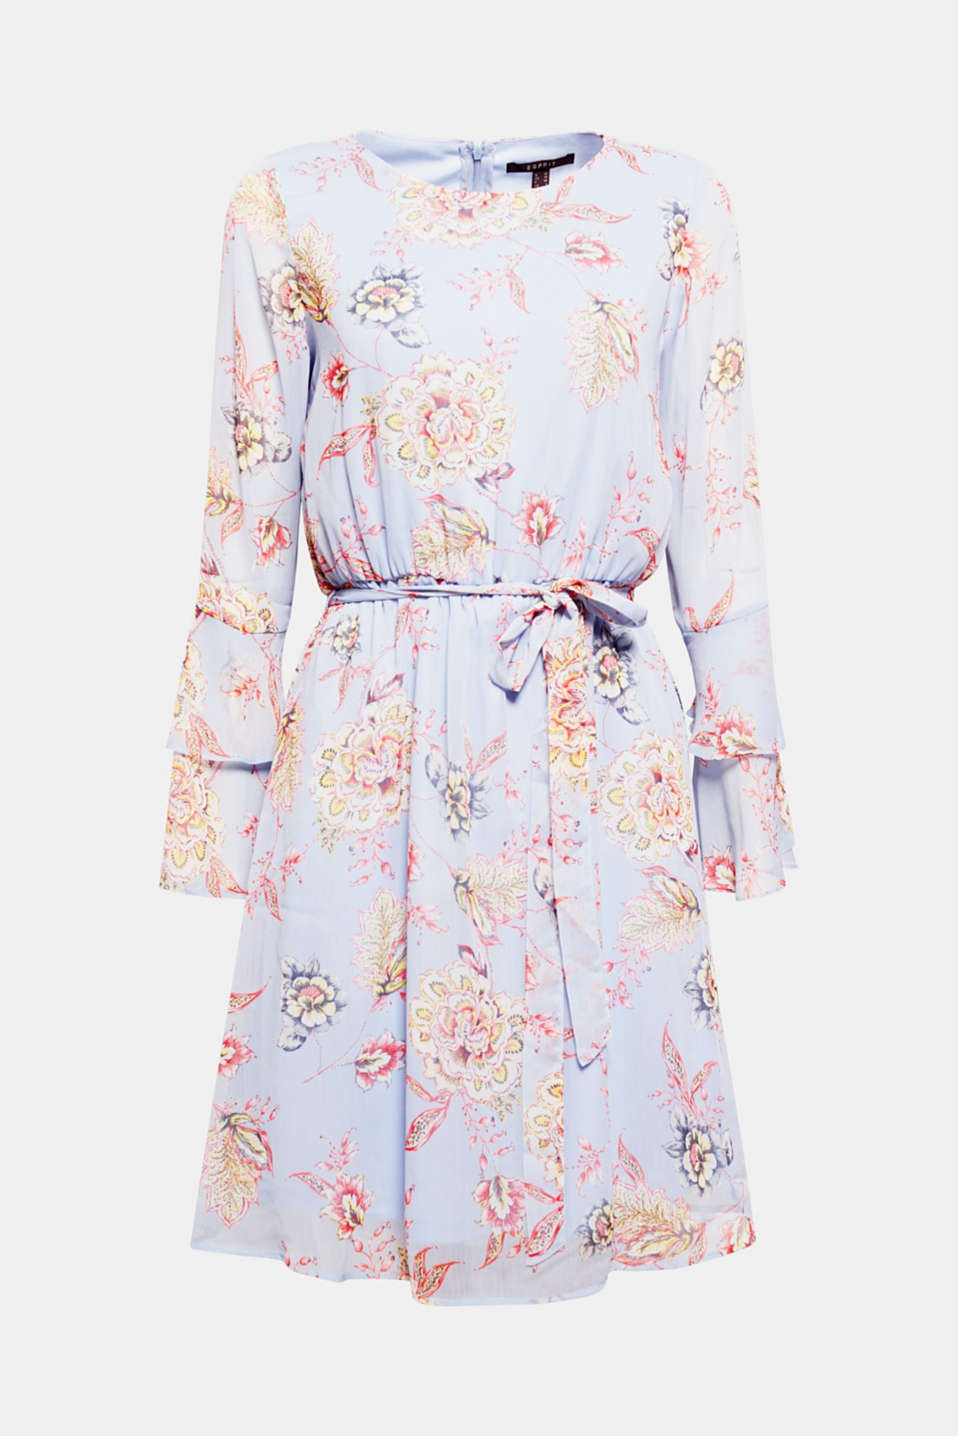 This flowery chiffon dress with a decorative floral print and flounce sleeves creates an enchanting look!